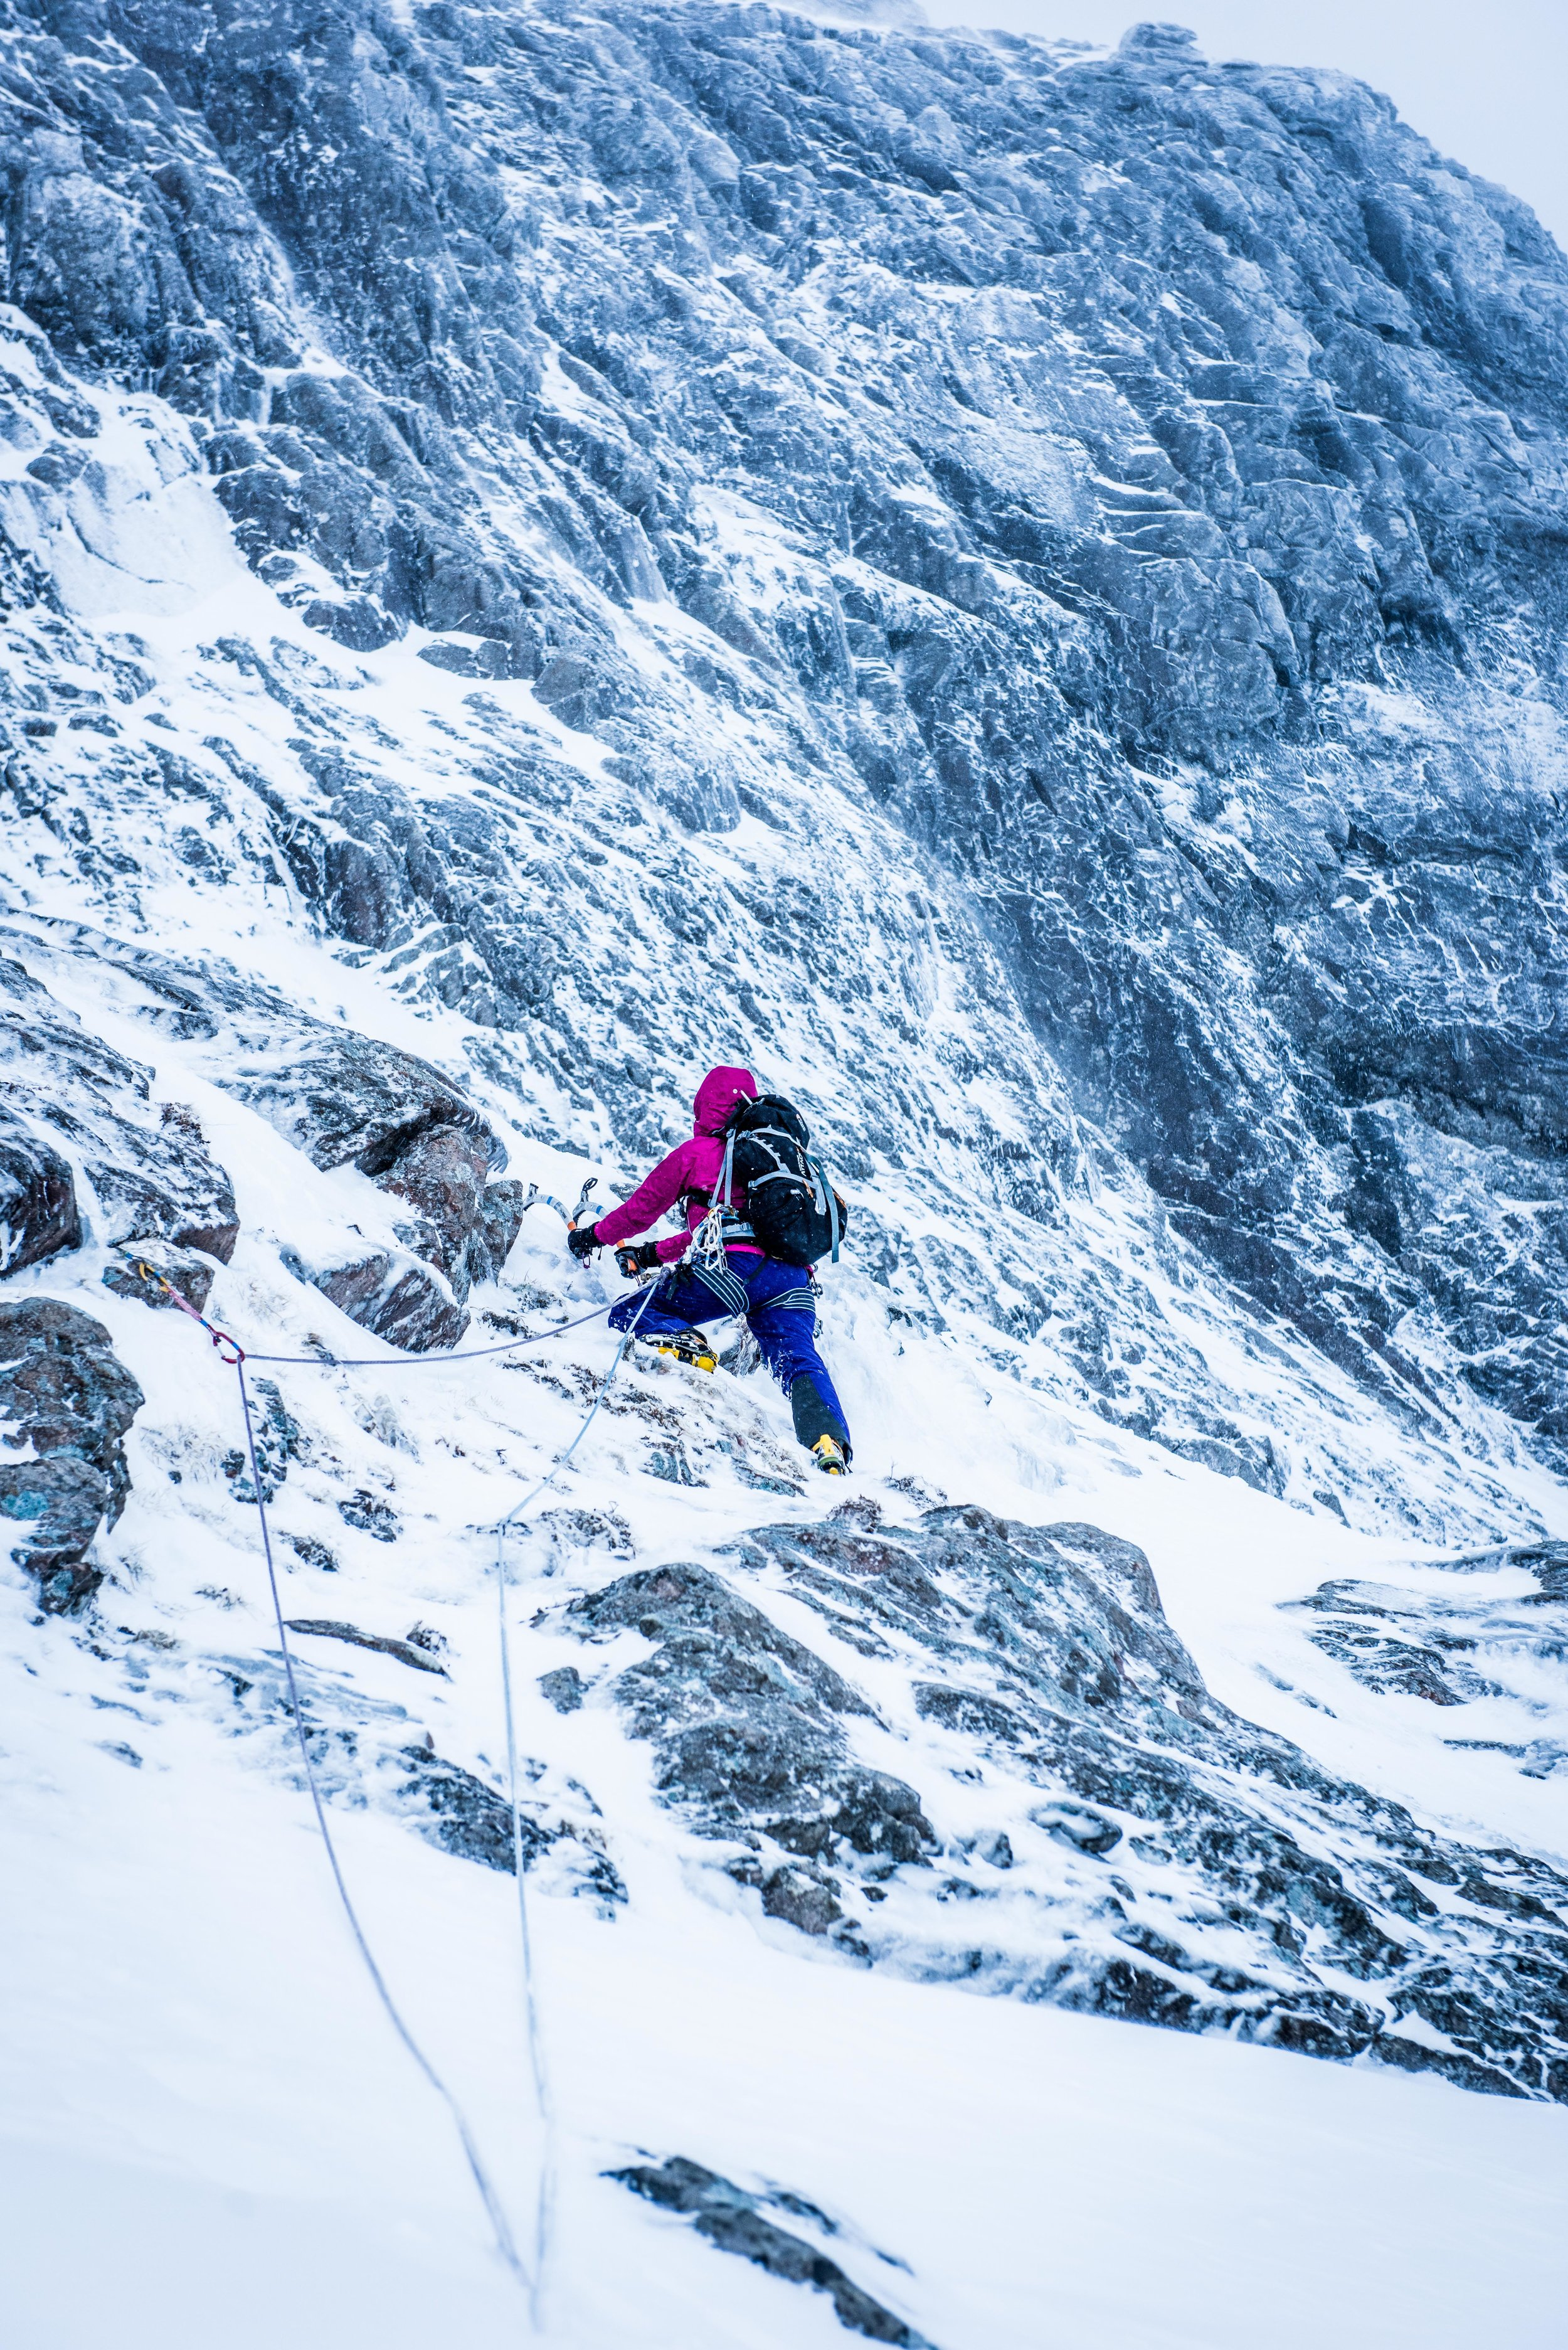 """Ronnie in action, """"Climbing and mountaineering, that's my main thing.""""  Photo:  Michal Dziwoski"""